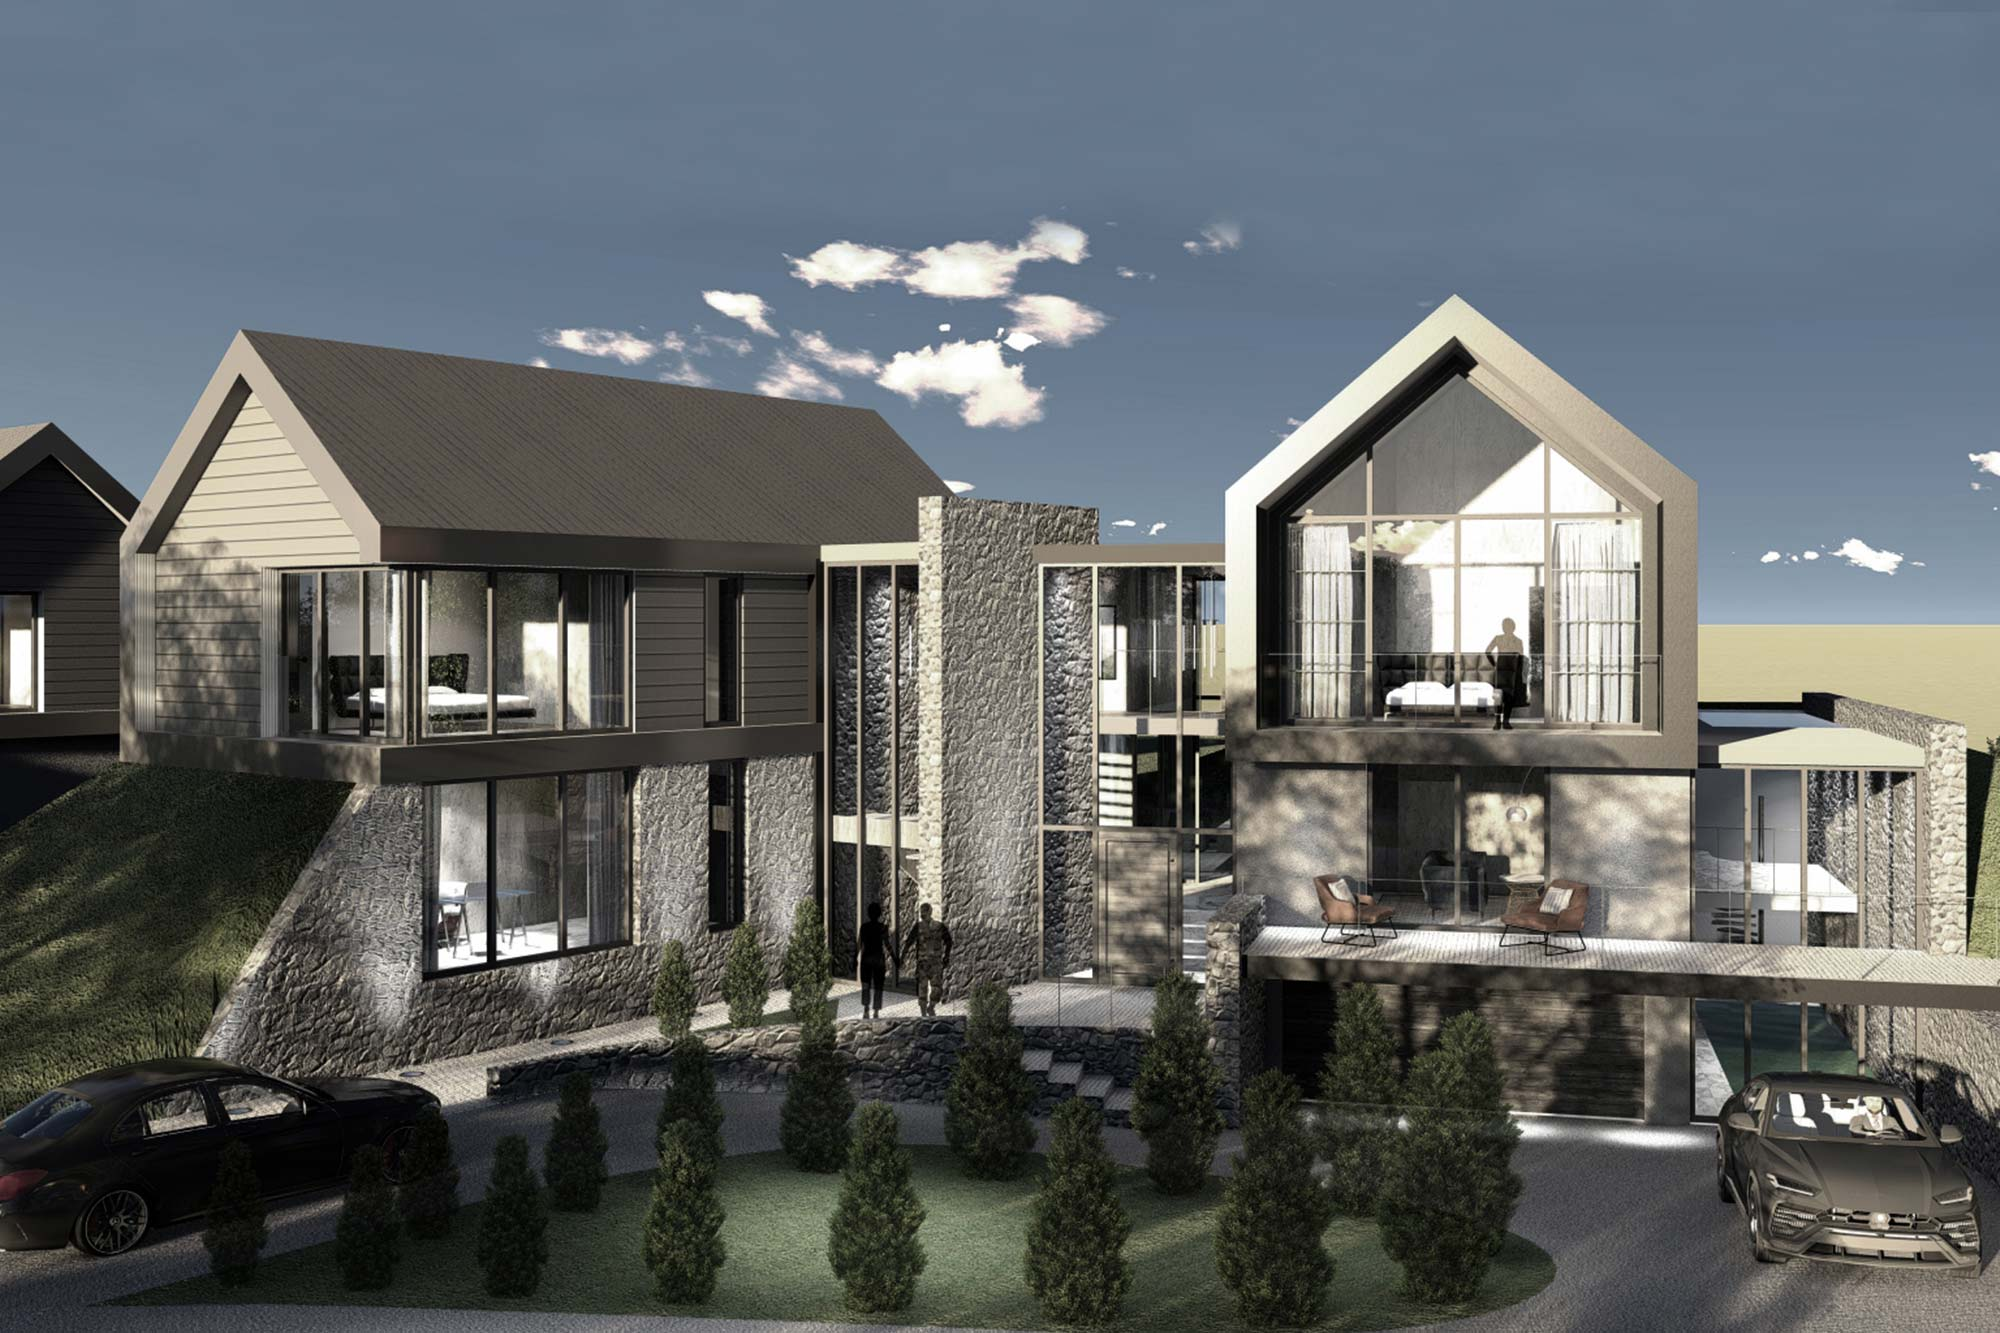 contemporary bespoke home in open countryside architectural design in Poulton-le-Fylde